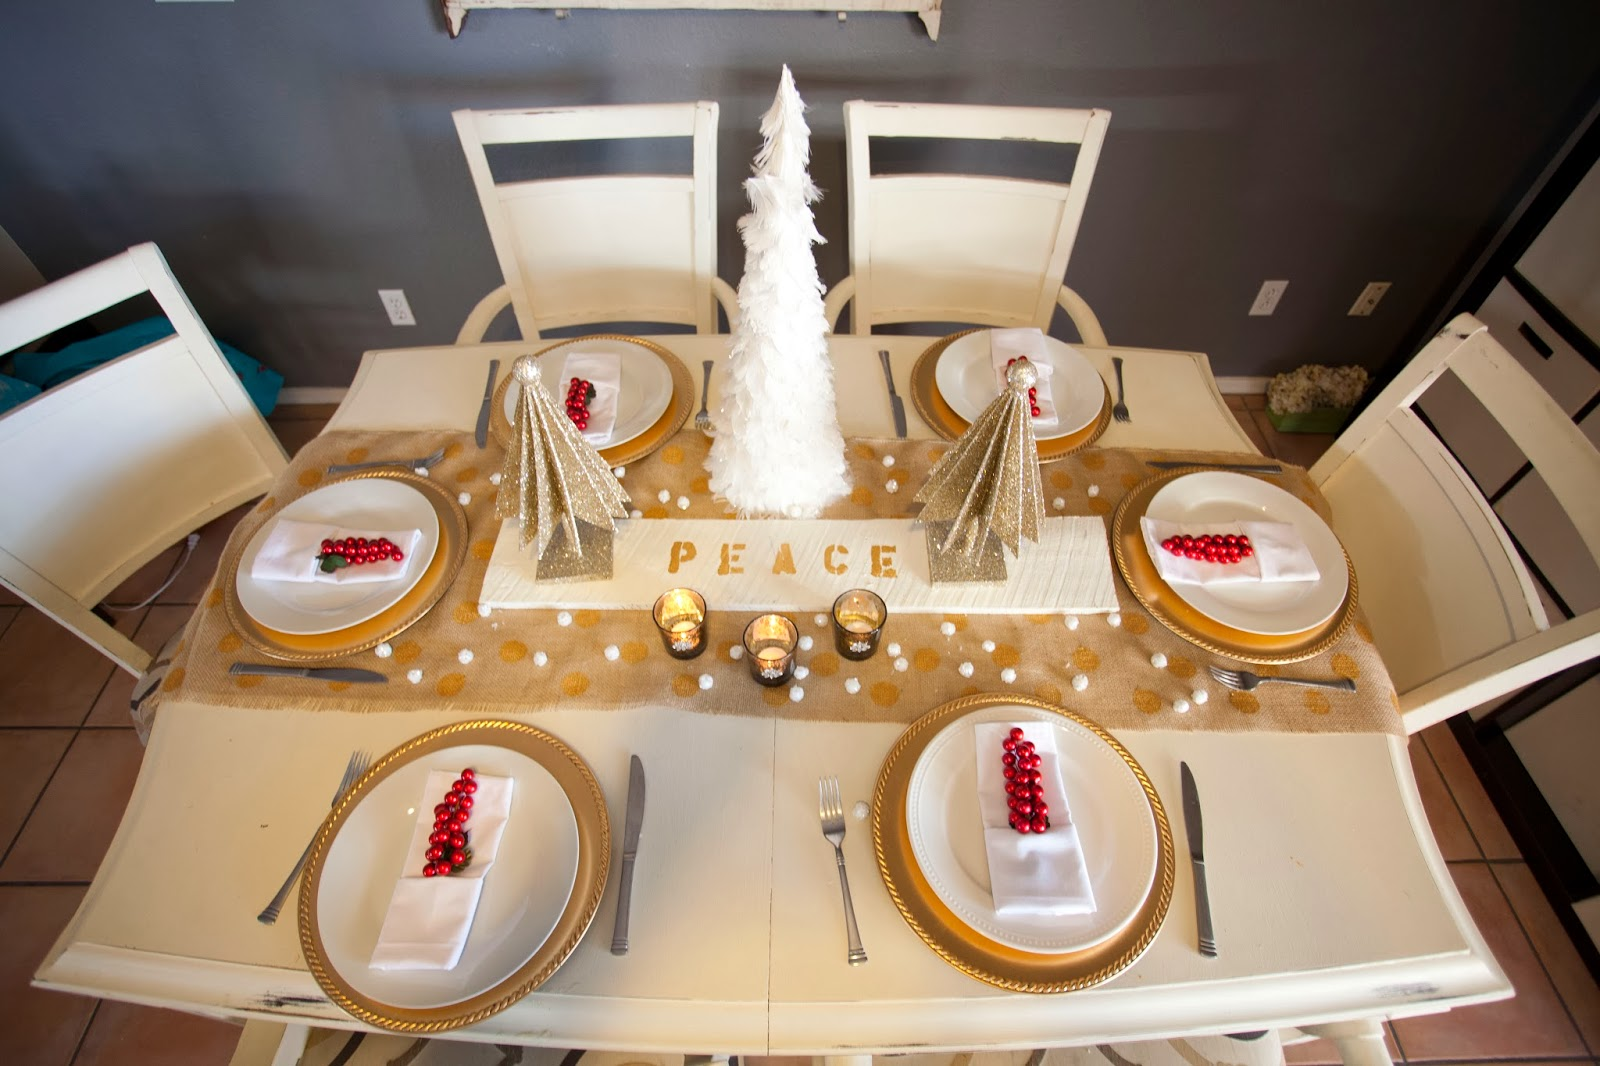 17 Spectacular Photo Of White And Gold Table Settings